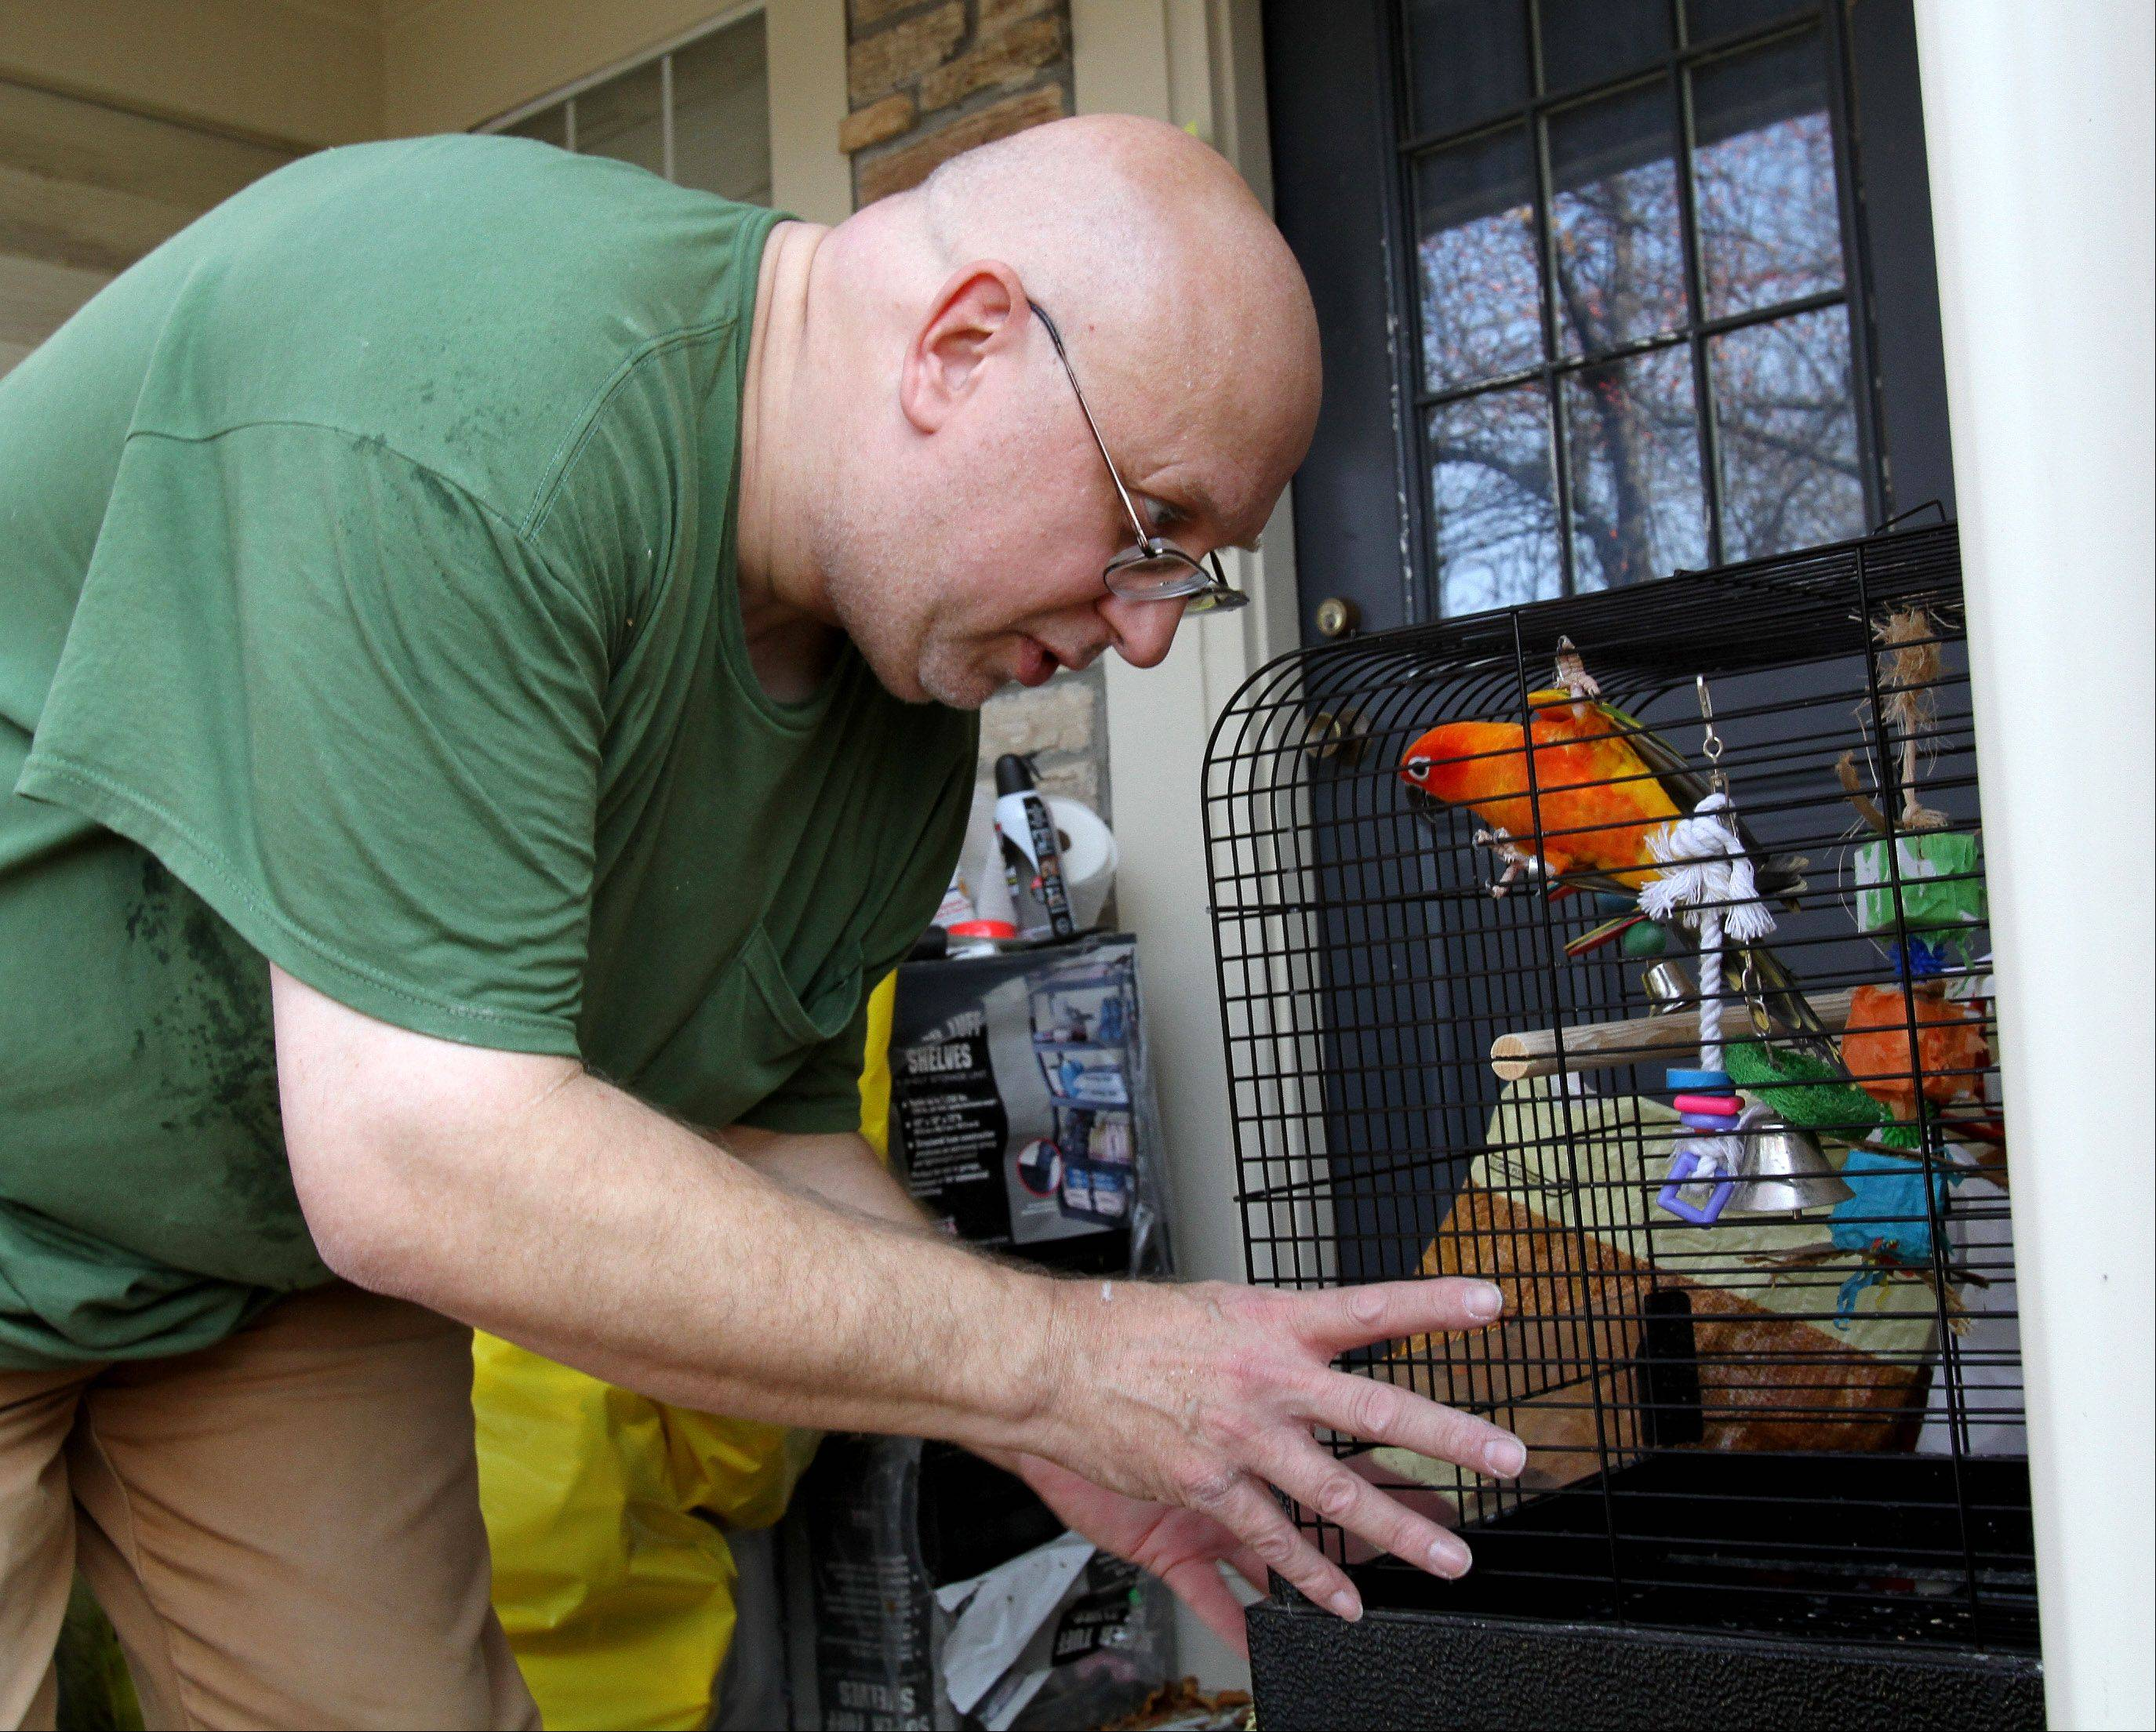 Bev Horne/bhorne@dailyherald.com � Dave Skeberdis outside his Aurora townhome with one of his birds, a Sun Conure named Sweetheart.